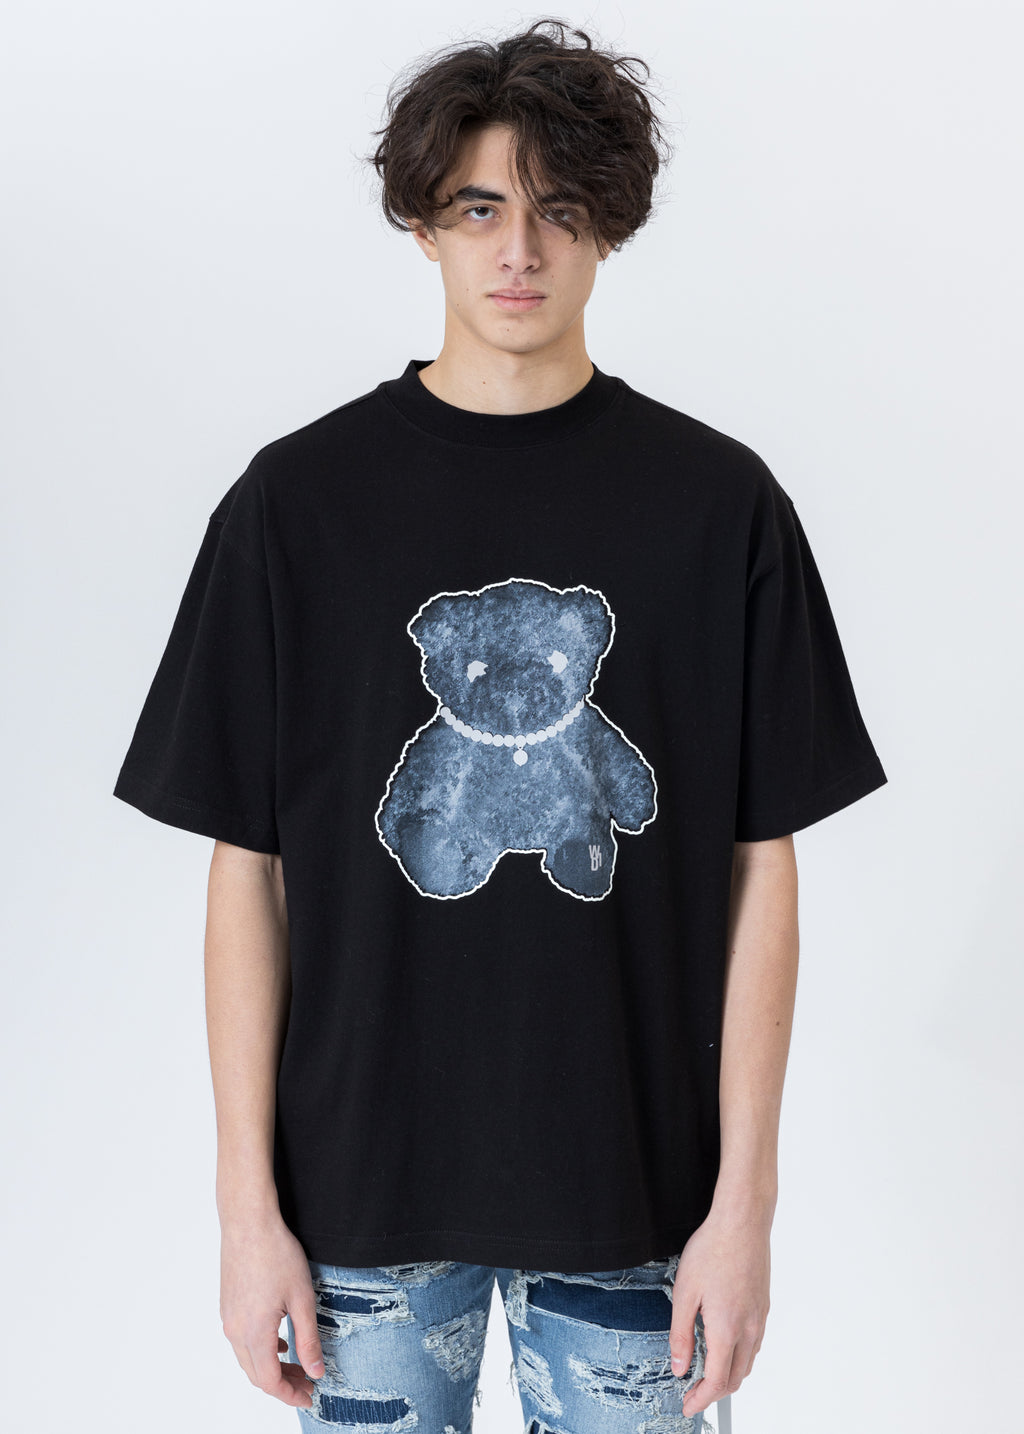 Black Pearl Necklace Teddy T-Shirt (Reflect)